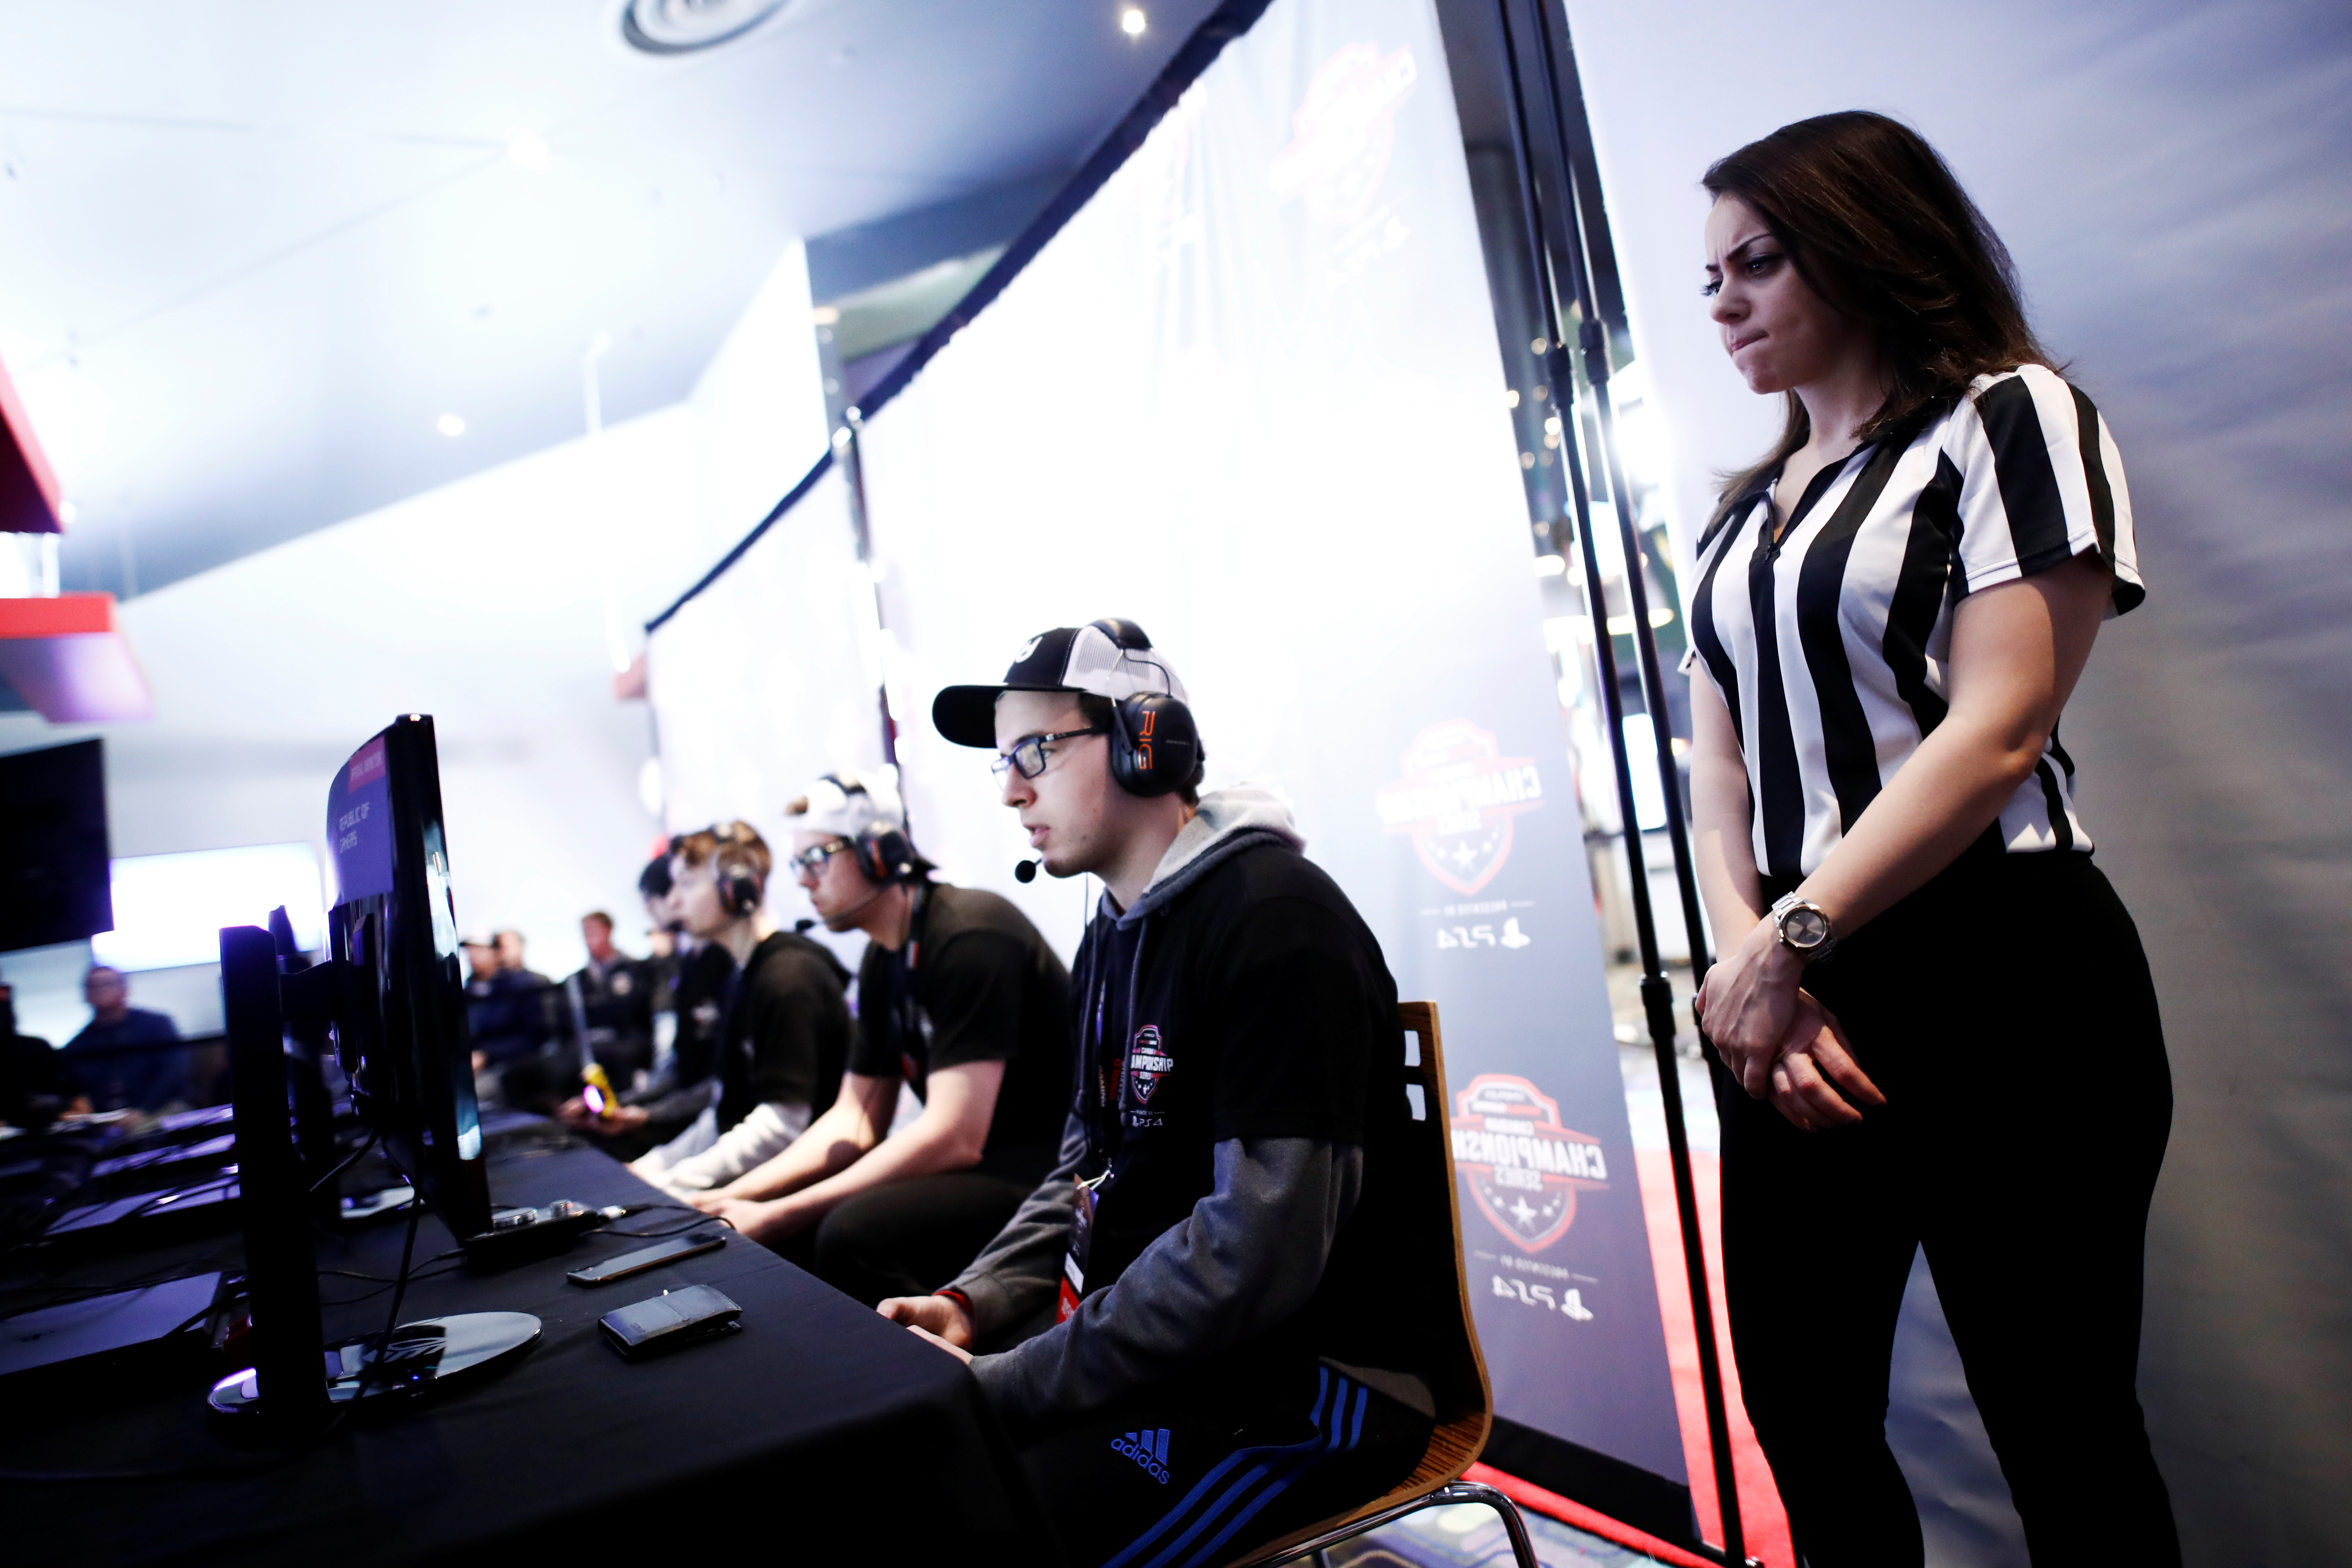 """A referee watches over competitors playing """"Call of Duty: Infinite Warfare"""" on the Playstation 4, during the Cineplex WorldGaming Canadian Championship Series, an esports video game tournament, n Toronto, Ontario, March 26, 2017."""